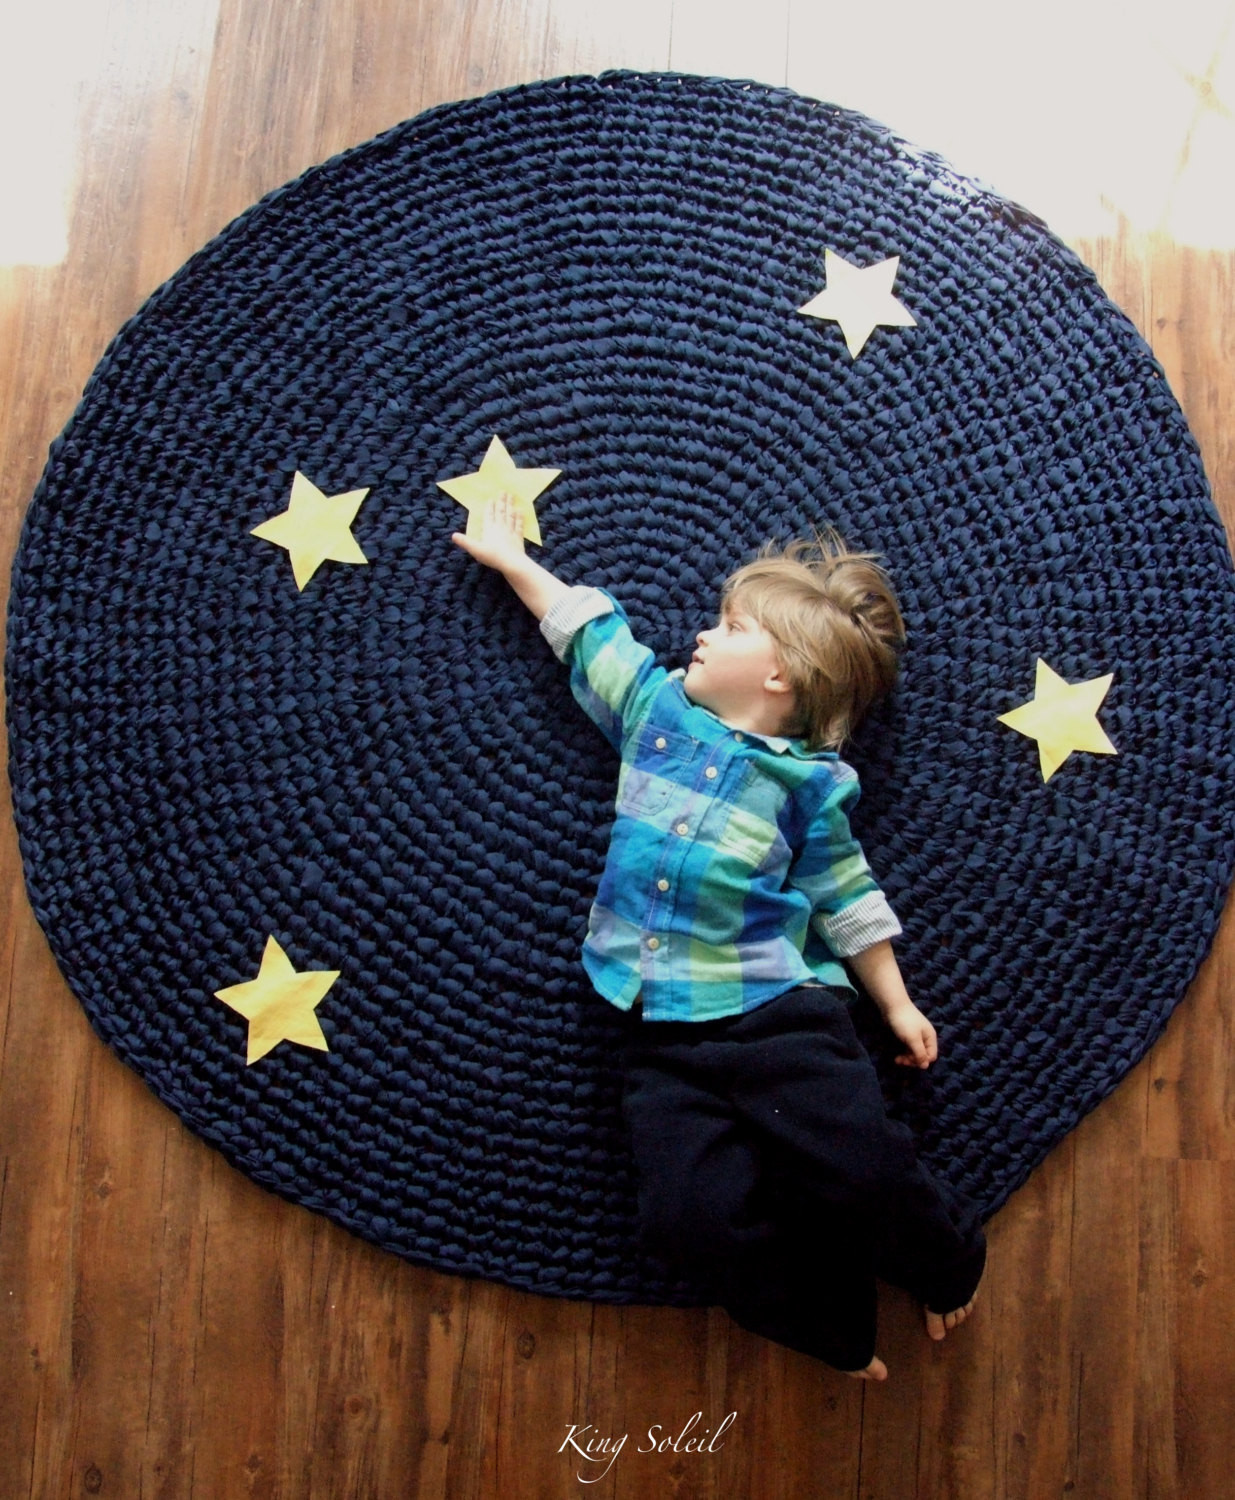 Crochet Rug Patterns Awesome Kids Rug Reach for the Stars Navy Cotton Crochet Rug with Of Amazing 41 Images Crochet Rug Patterns